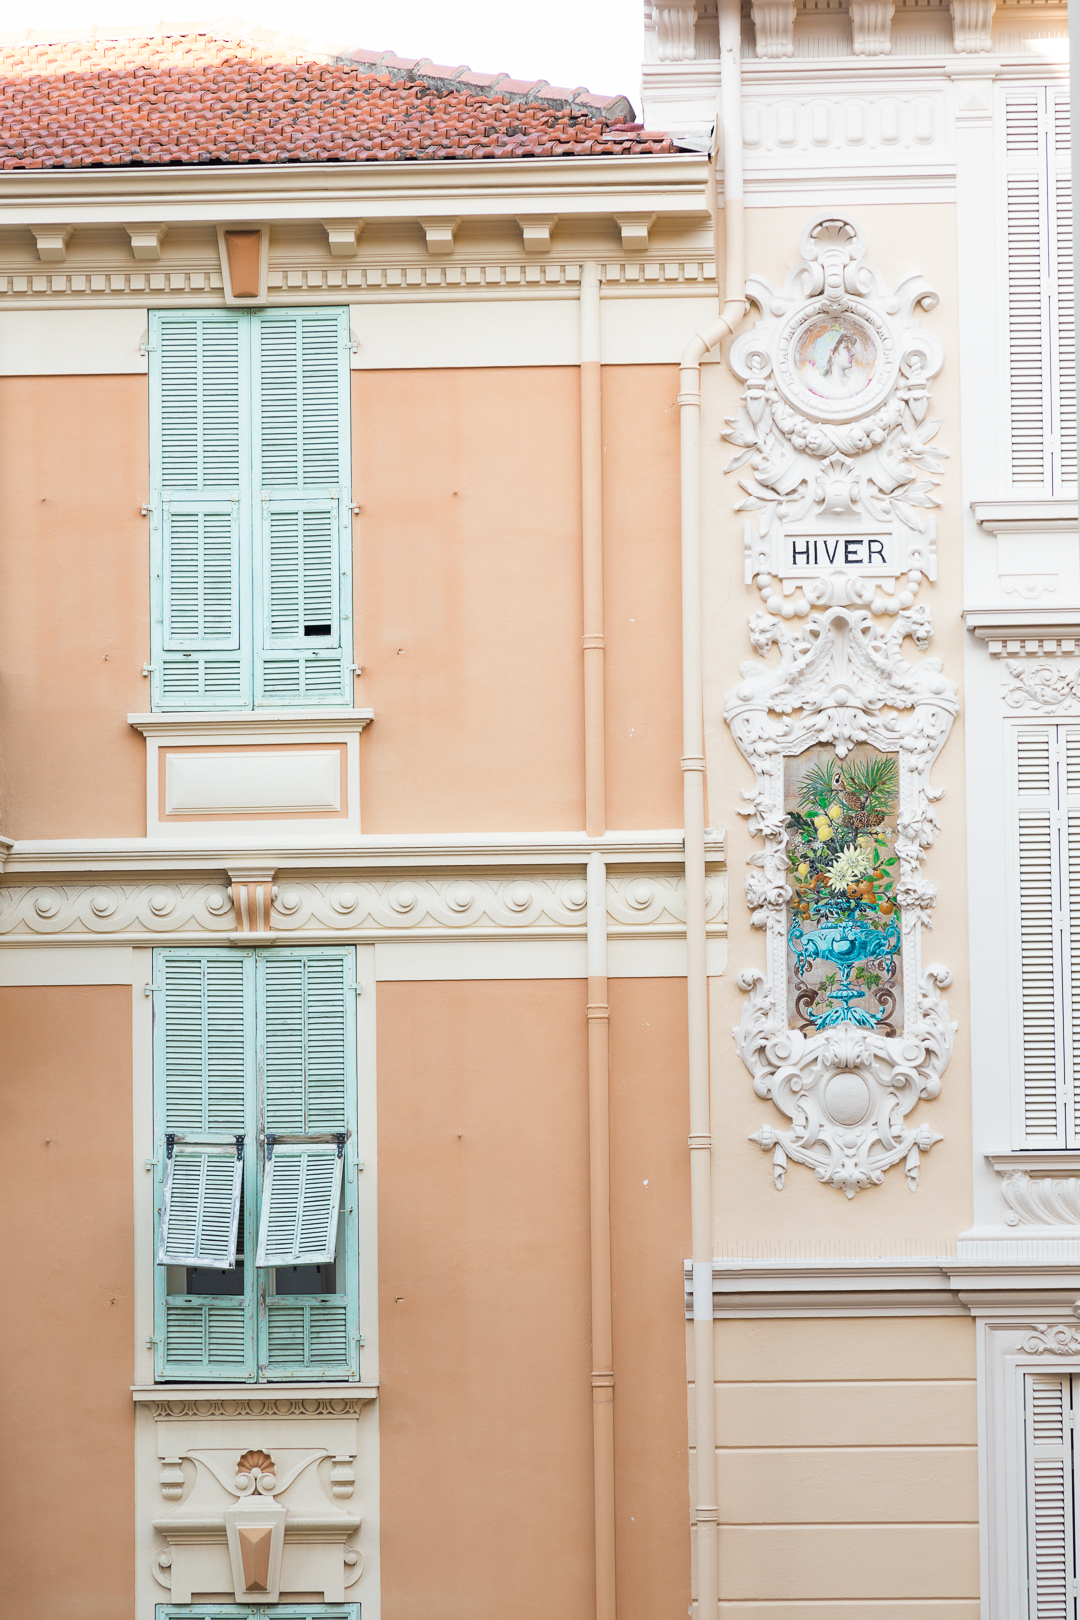 Architecture in Nice, France